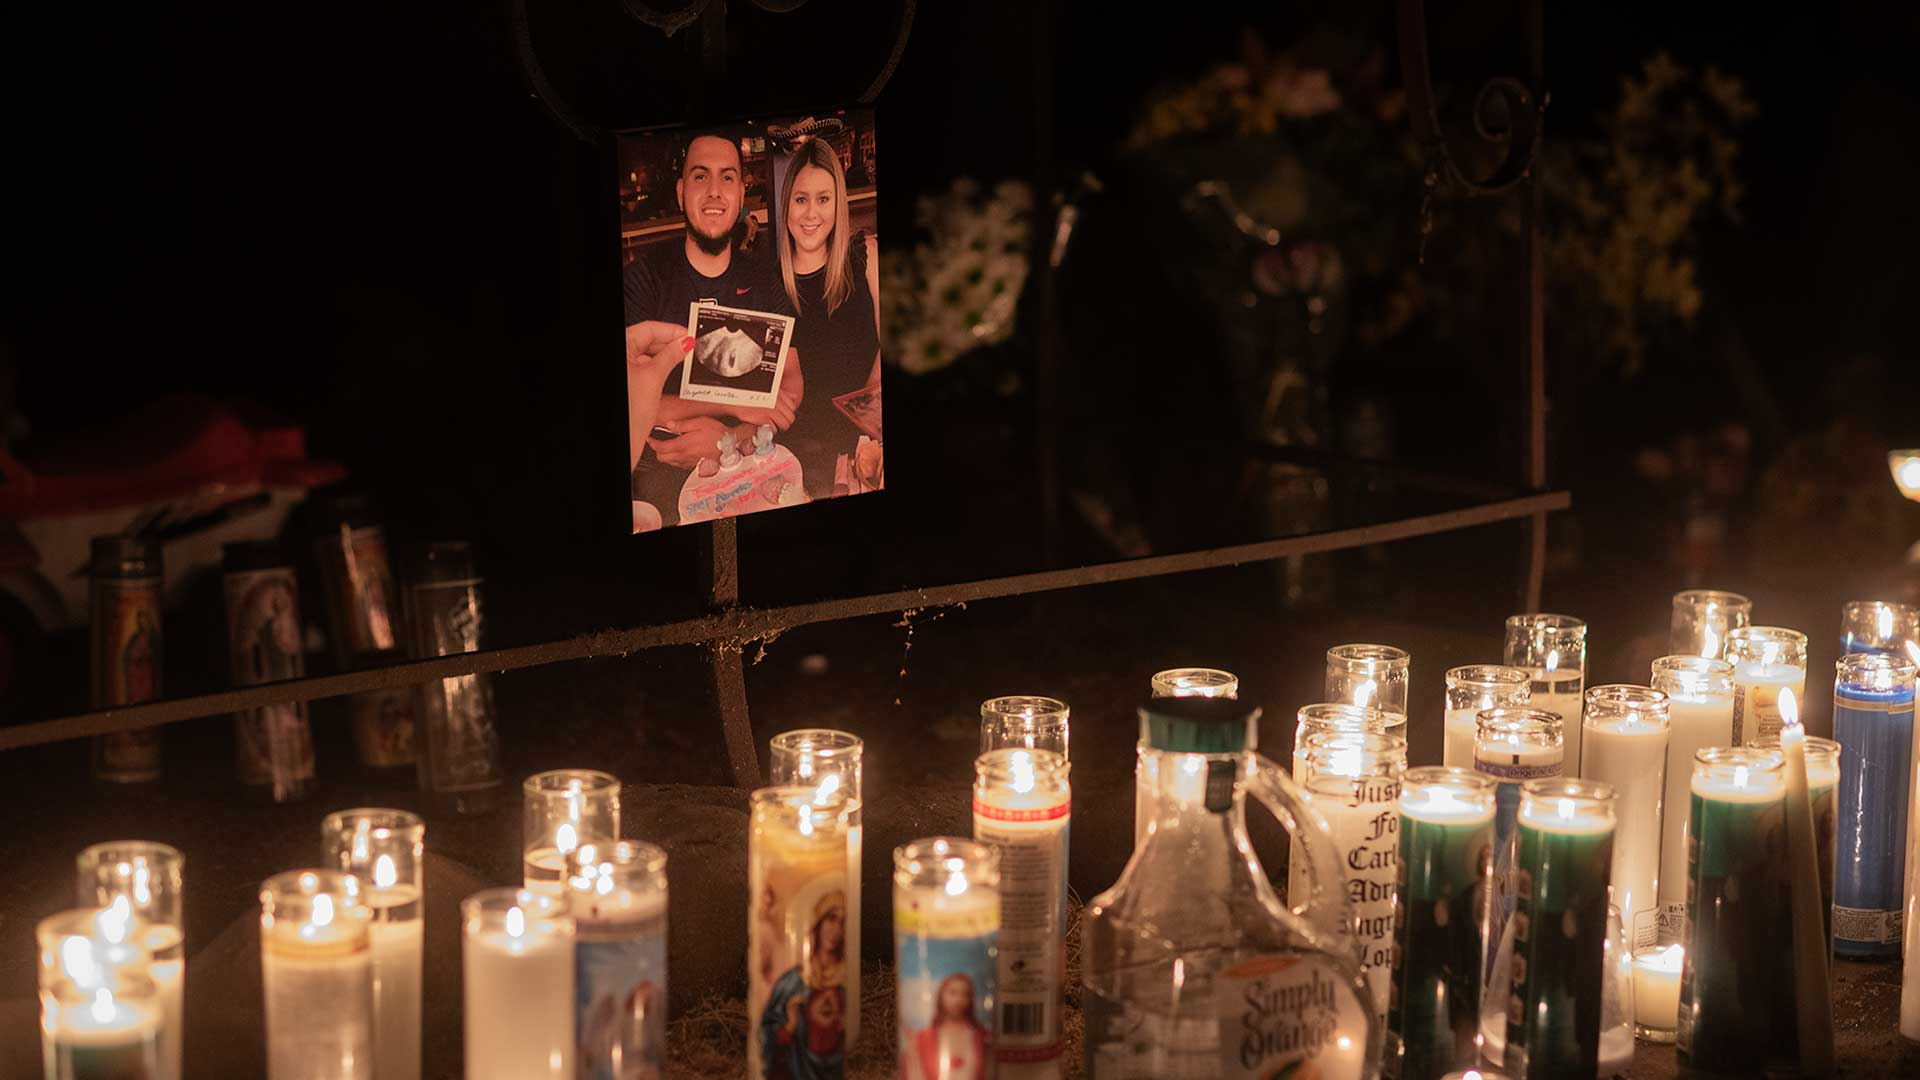 Candles encircle an image of Carlos Ingram-Lopez with his fiancé at the El Tiridito shrine.